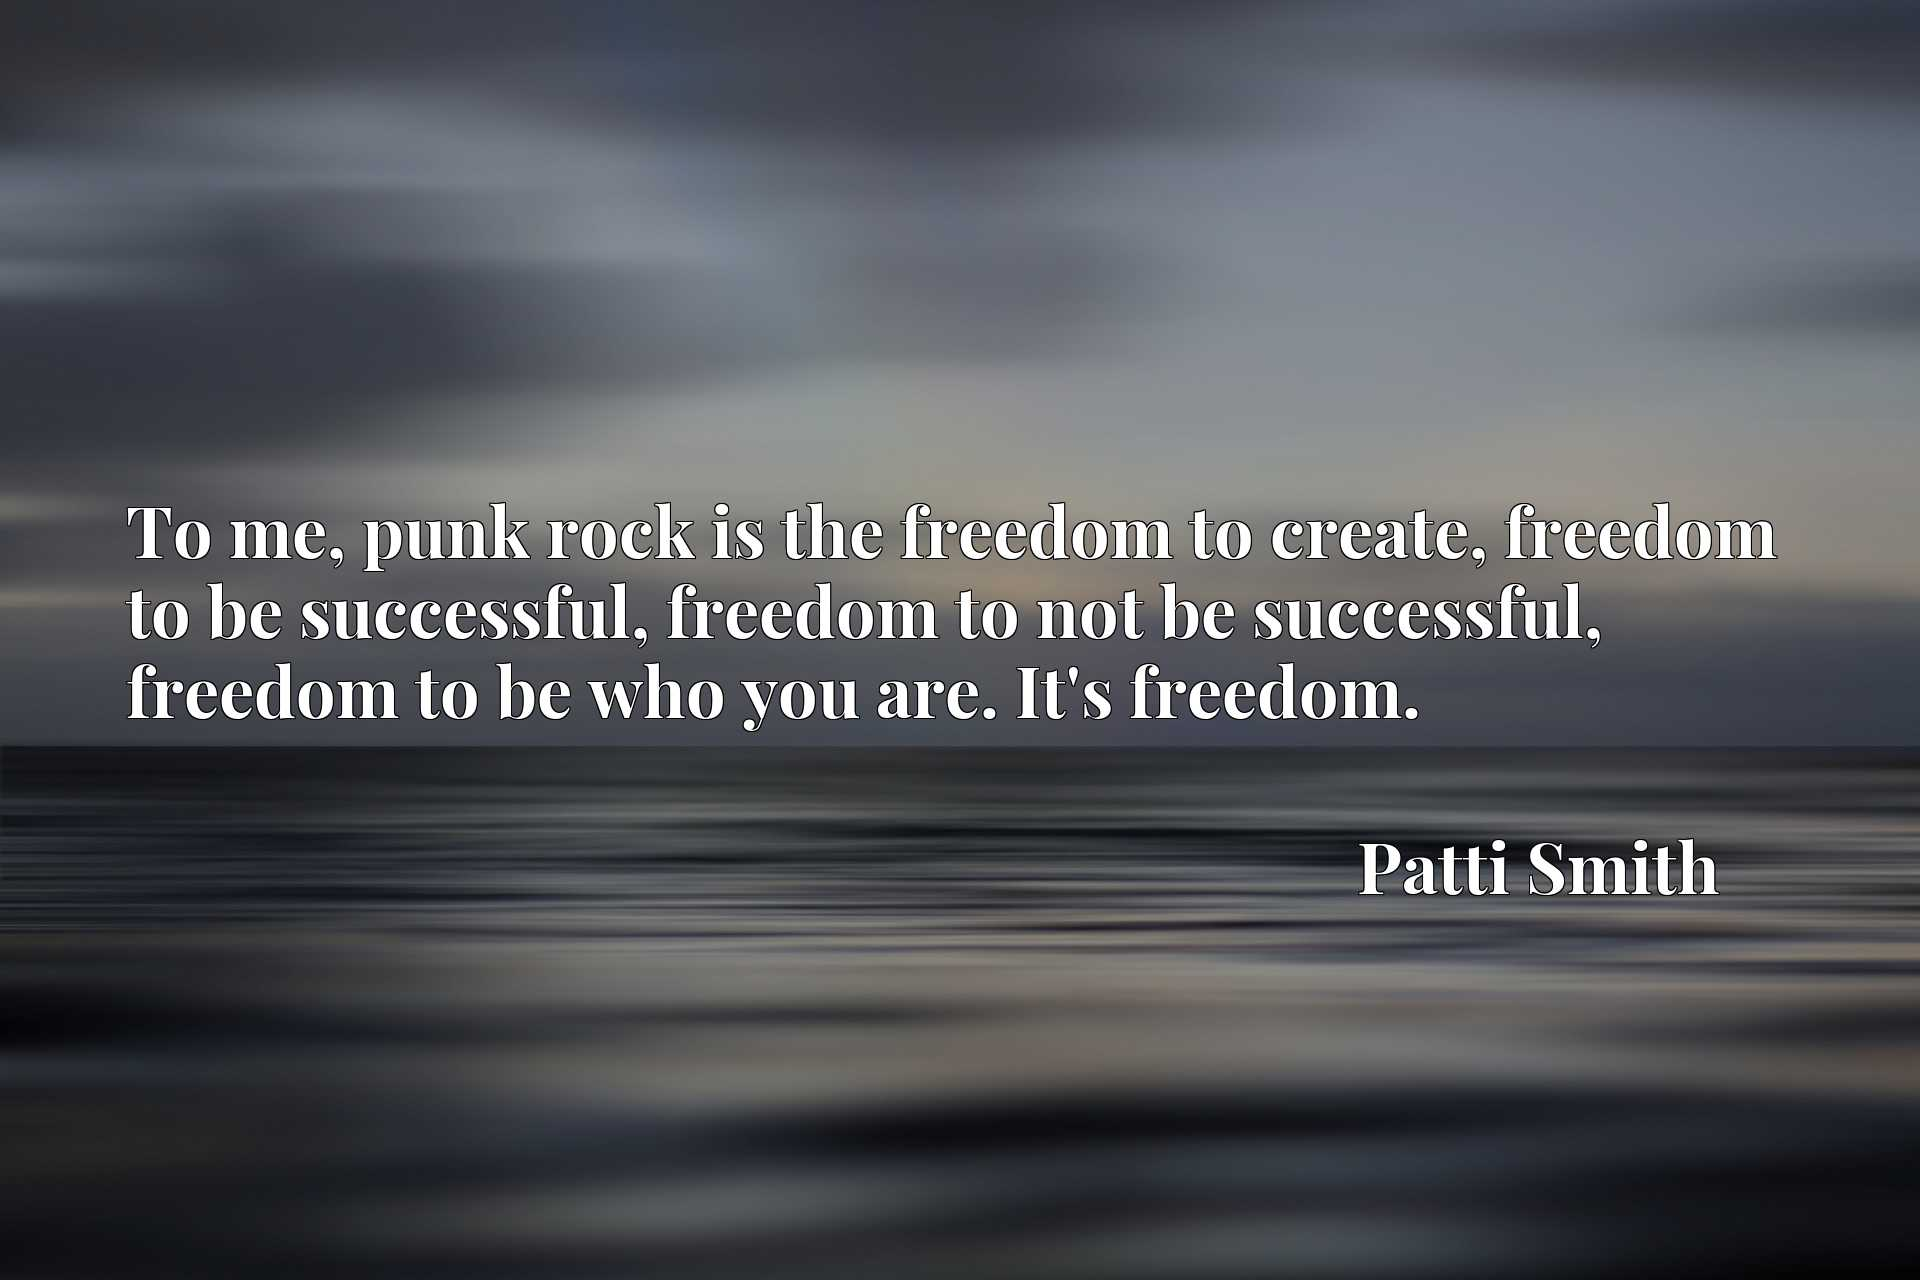 To me, punk rock is the freedom to create, freedom to be successful, freedom to not be successful, freedom to be who you are. It's freedom.